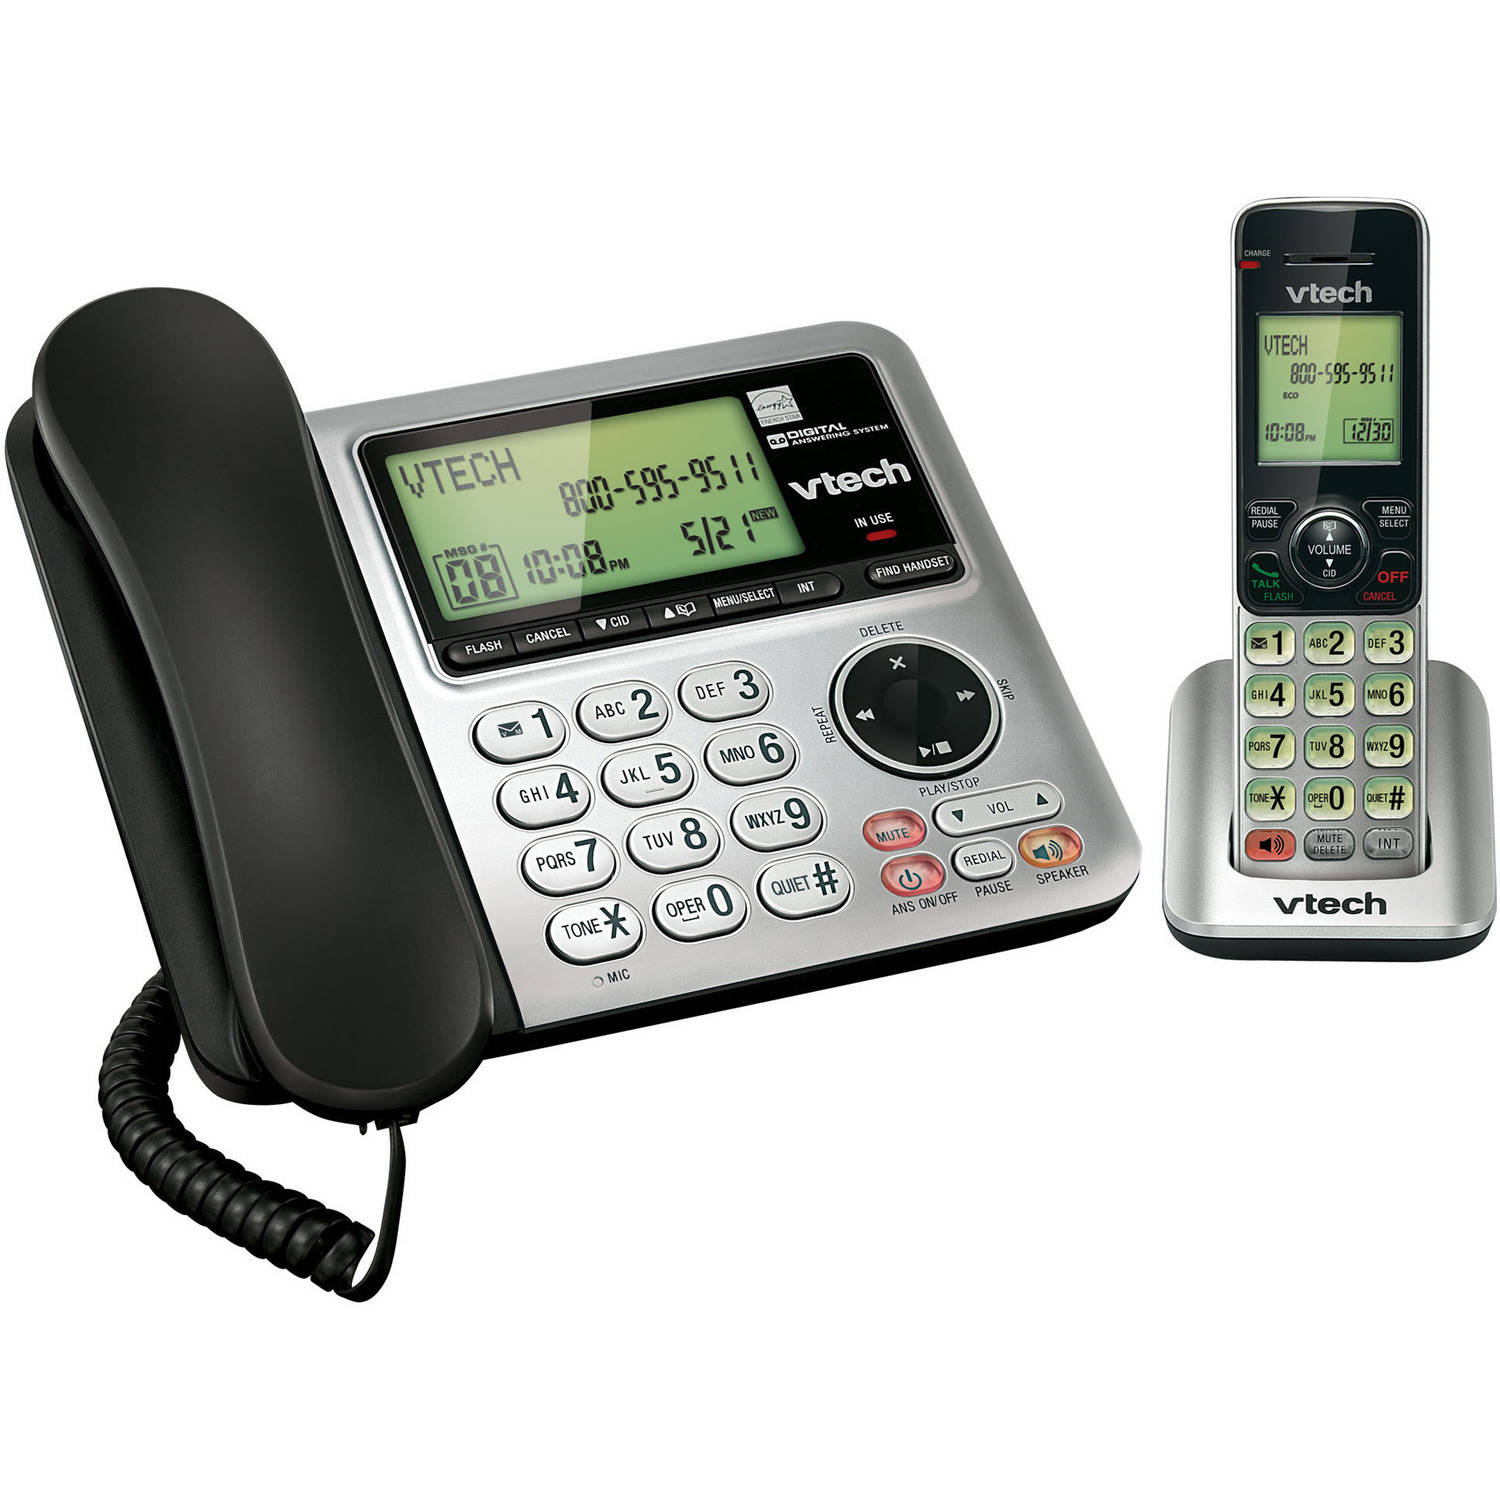 VTech CS6649 DECT 6.0 Expandable Corded/Cordless Phone with Answering System and Caller ID/Call Waiting, Silver/Black with 1 Handset